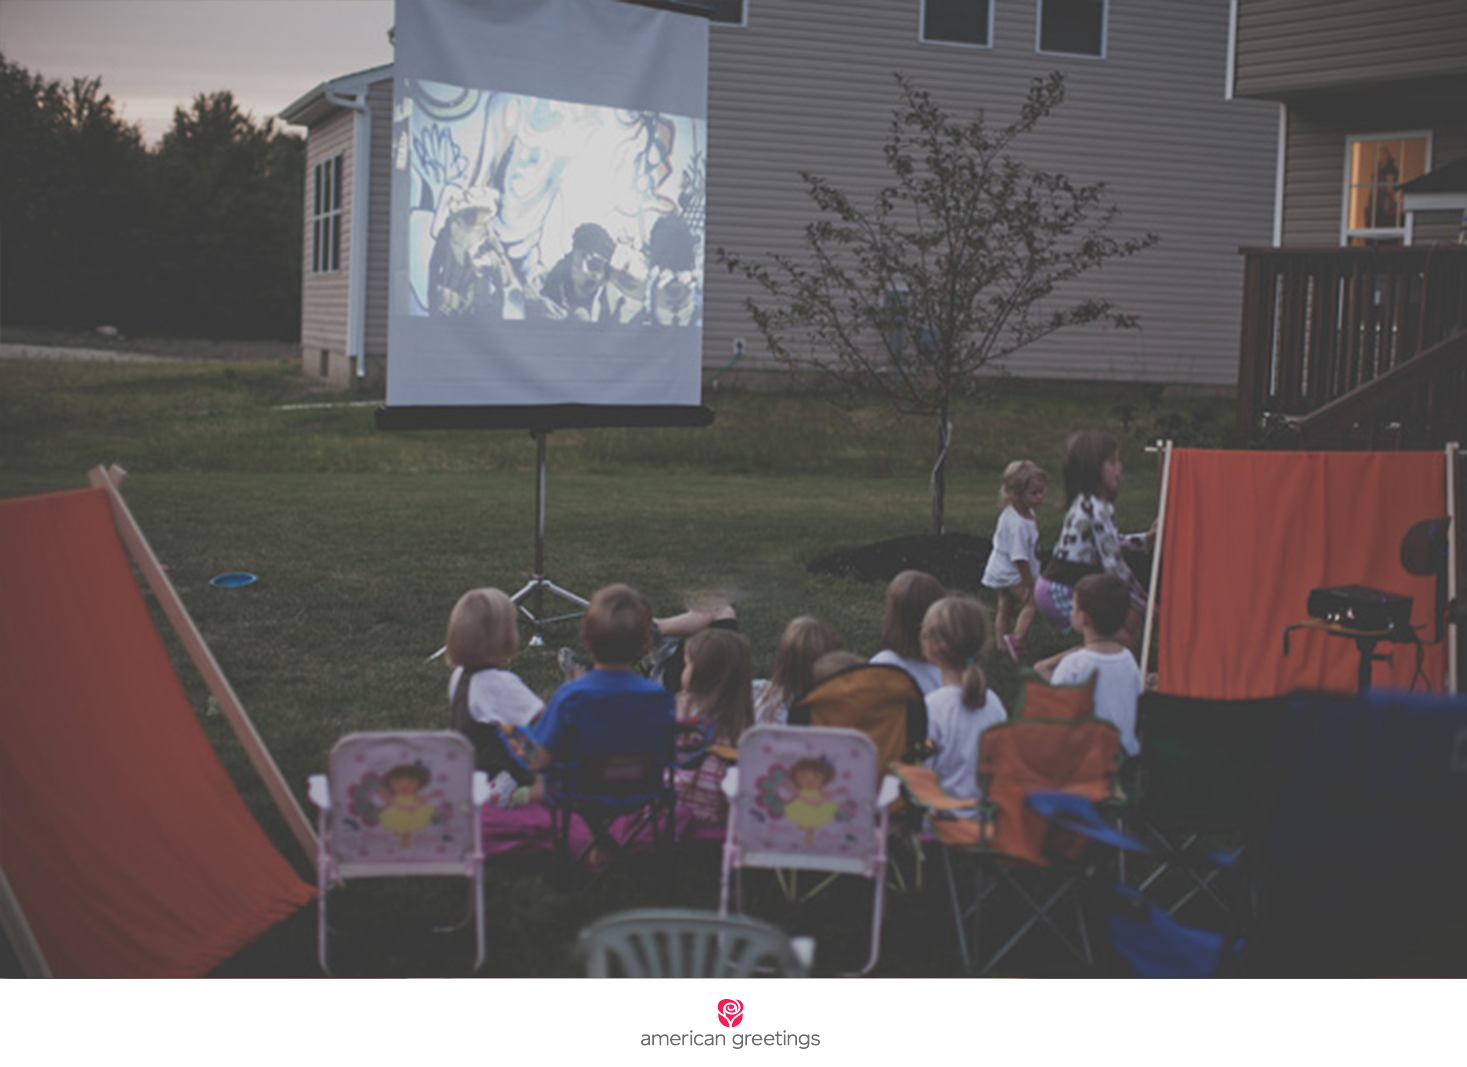 Kids snuggled up in sleeping bags, on lawn chairs, or in tents watching an outdoor movie